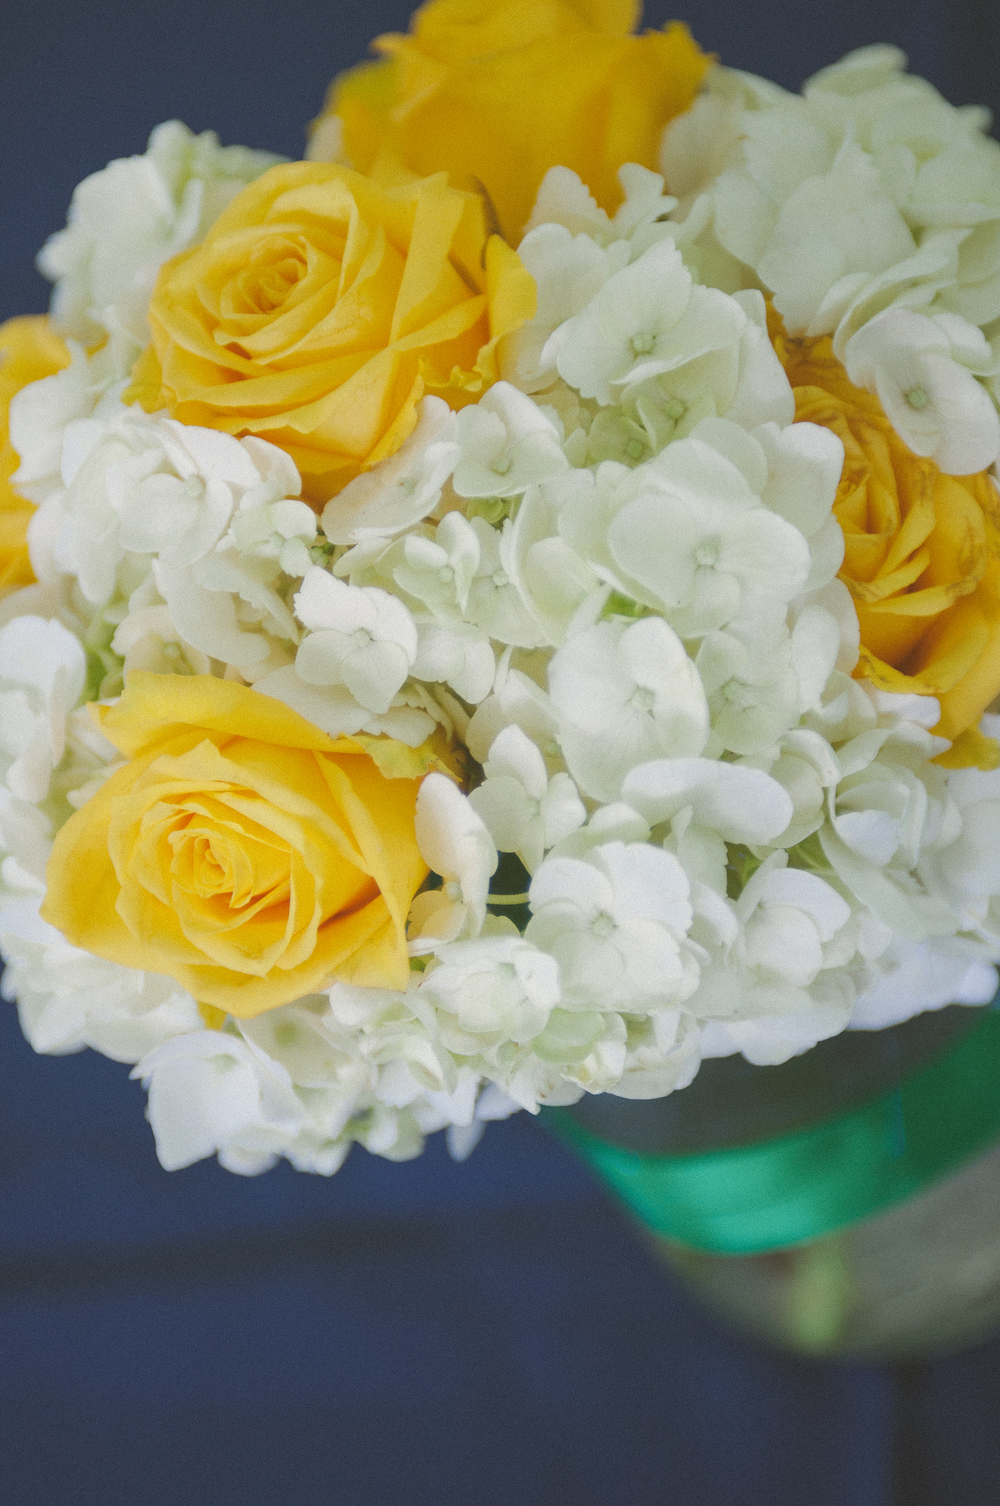 wedding-styling-natural-light-photography-lifestyle-documentary-flowers-table-yellow-roses-white-flower-vsco-digital-long-island-wedding-photographer.jpg